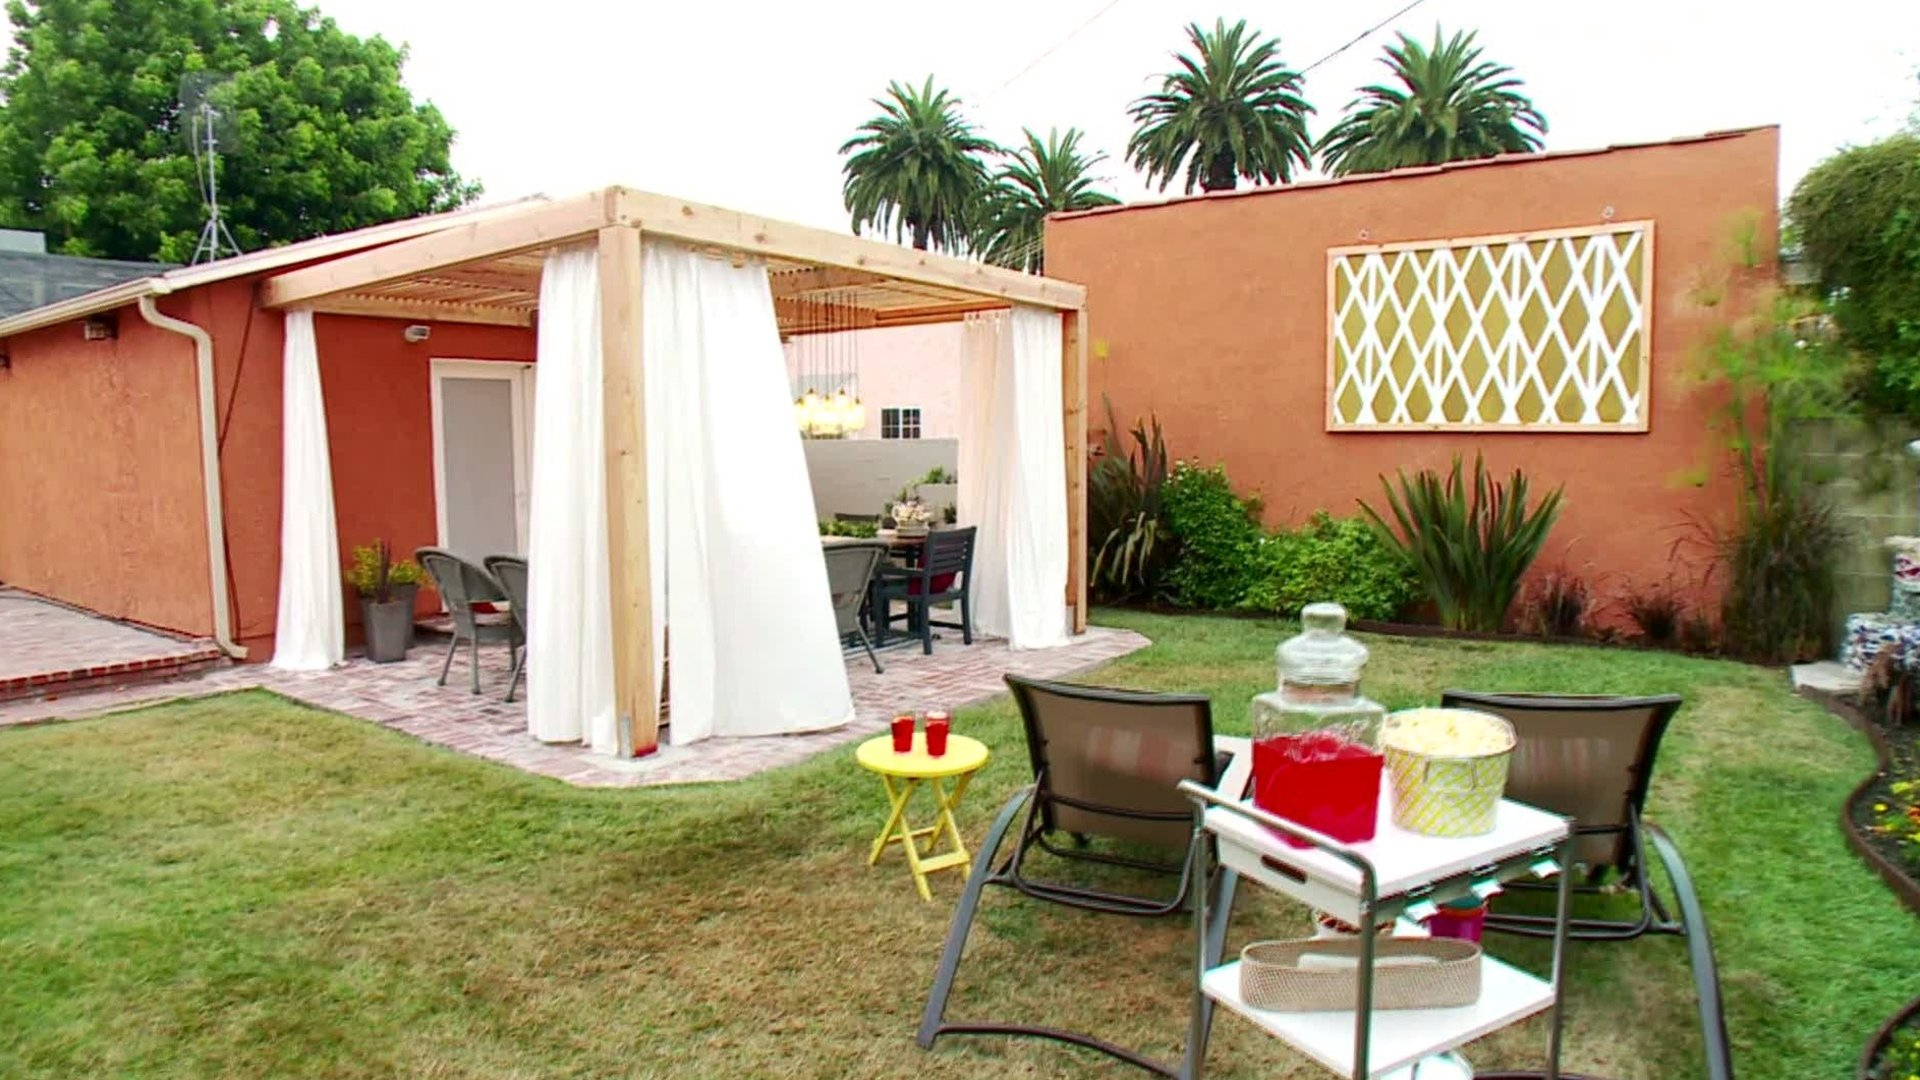 10 Ideal Diy Backyard Ideas On A Budget 12 budget friendly backyards diy 2 2020